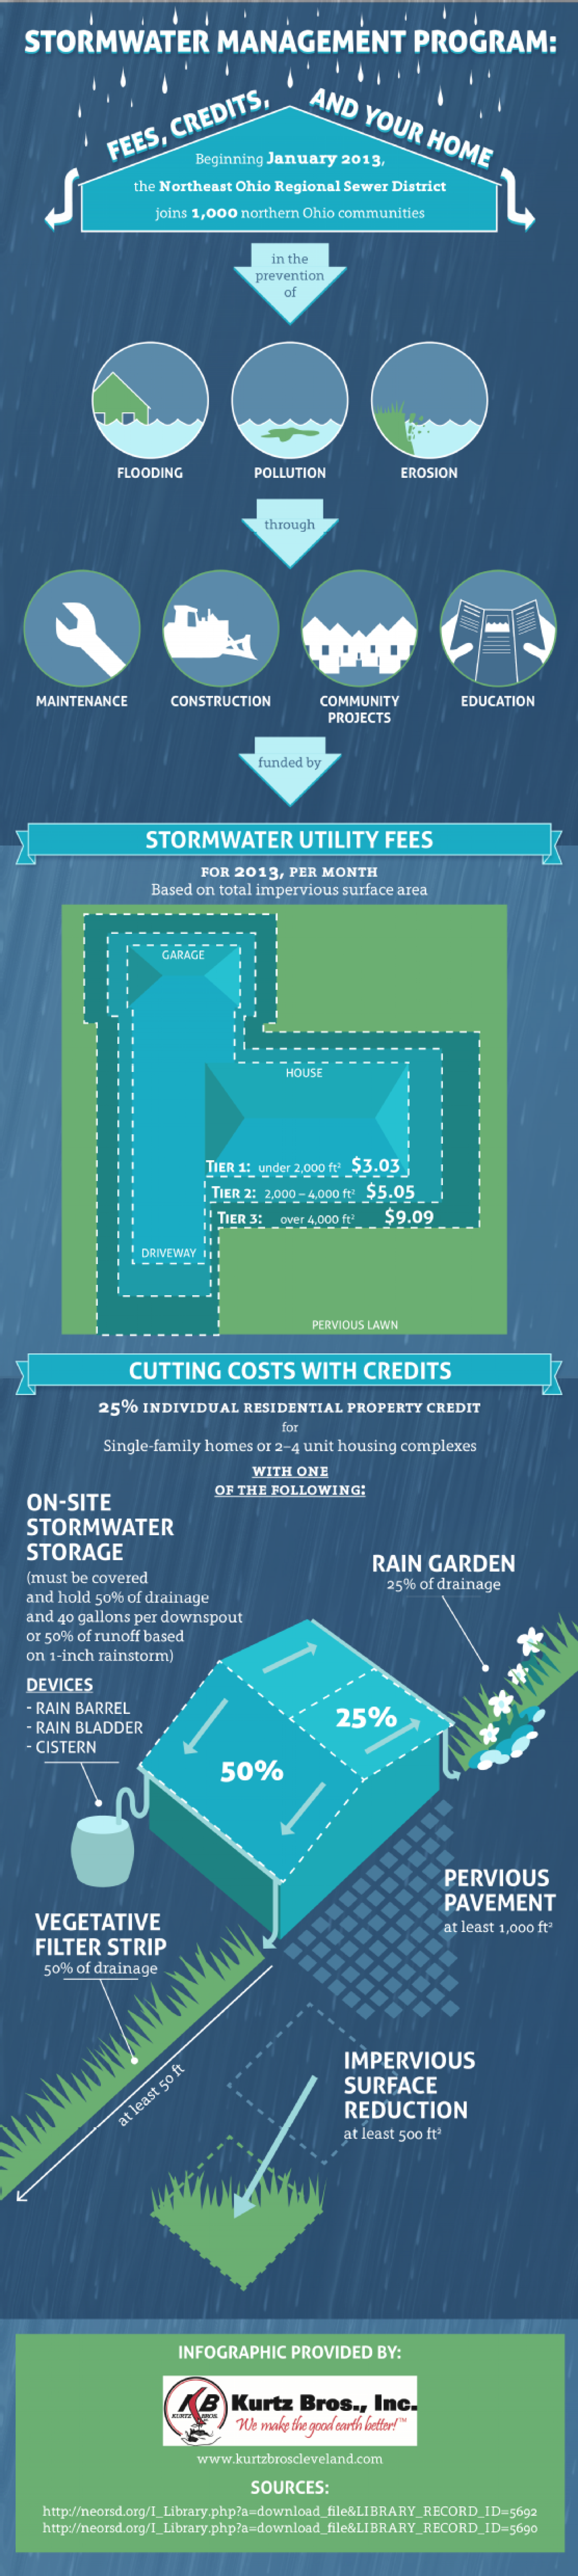 Stormwater Management Program: Fees, Credits, and Your Home Infographic